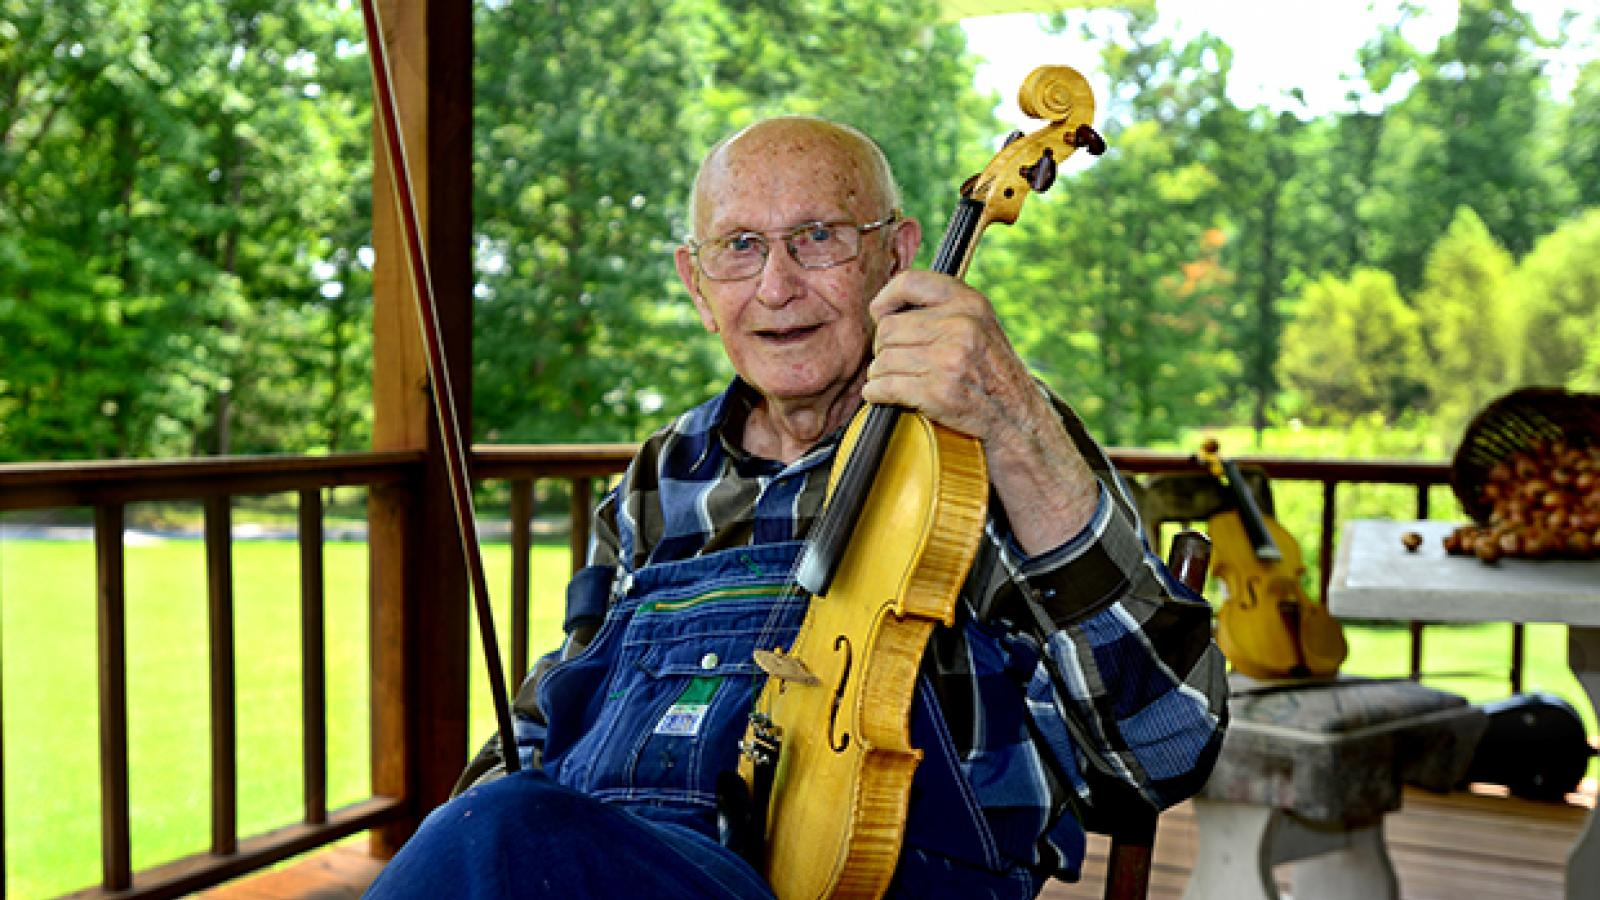 A man sits on a porch wearing overalls and holding a fiddle